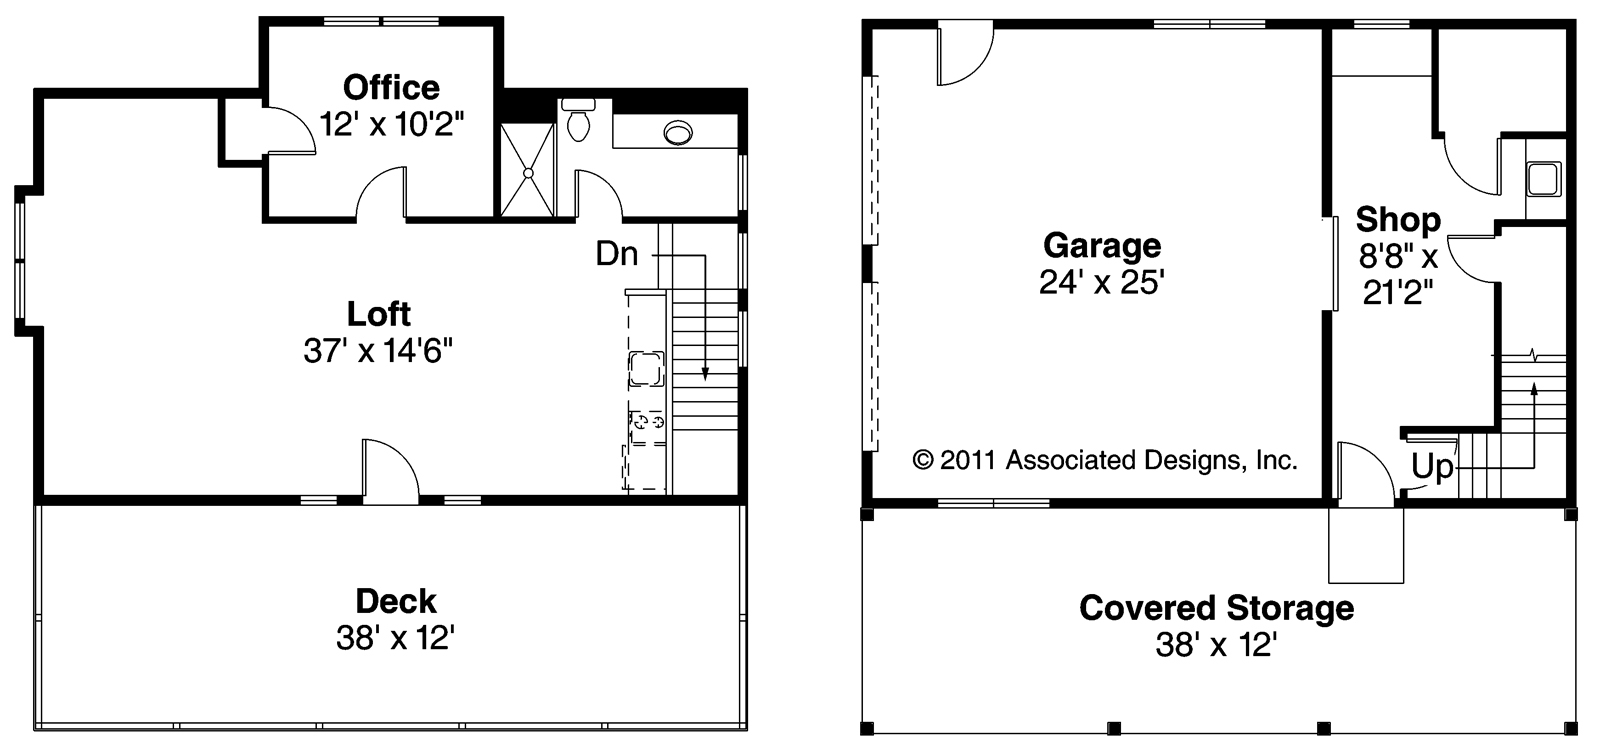 2 car garage plans with loft - 2 Car Garage Plans With Loft Floor Plan Of A Mansion 20061flr 2 Car Garage Plans